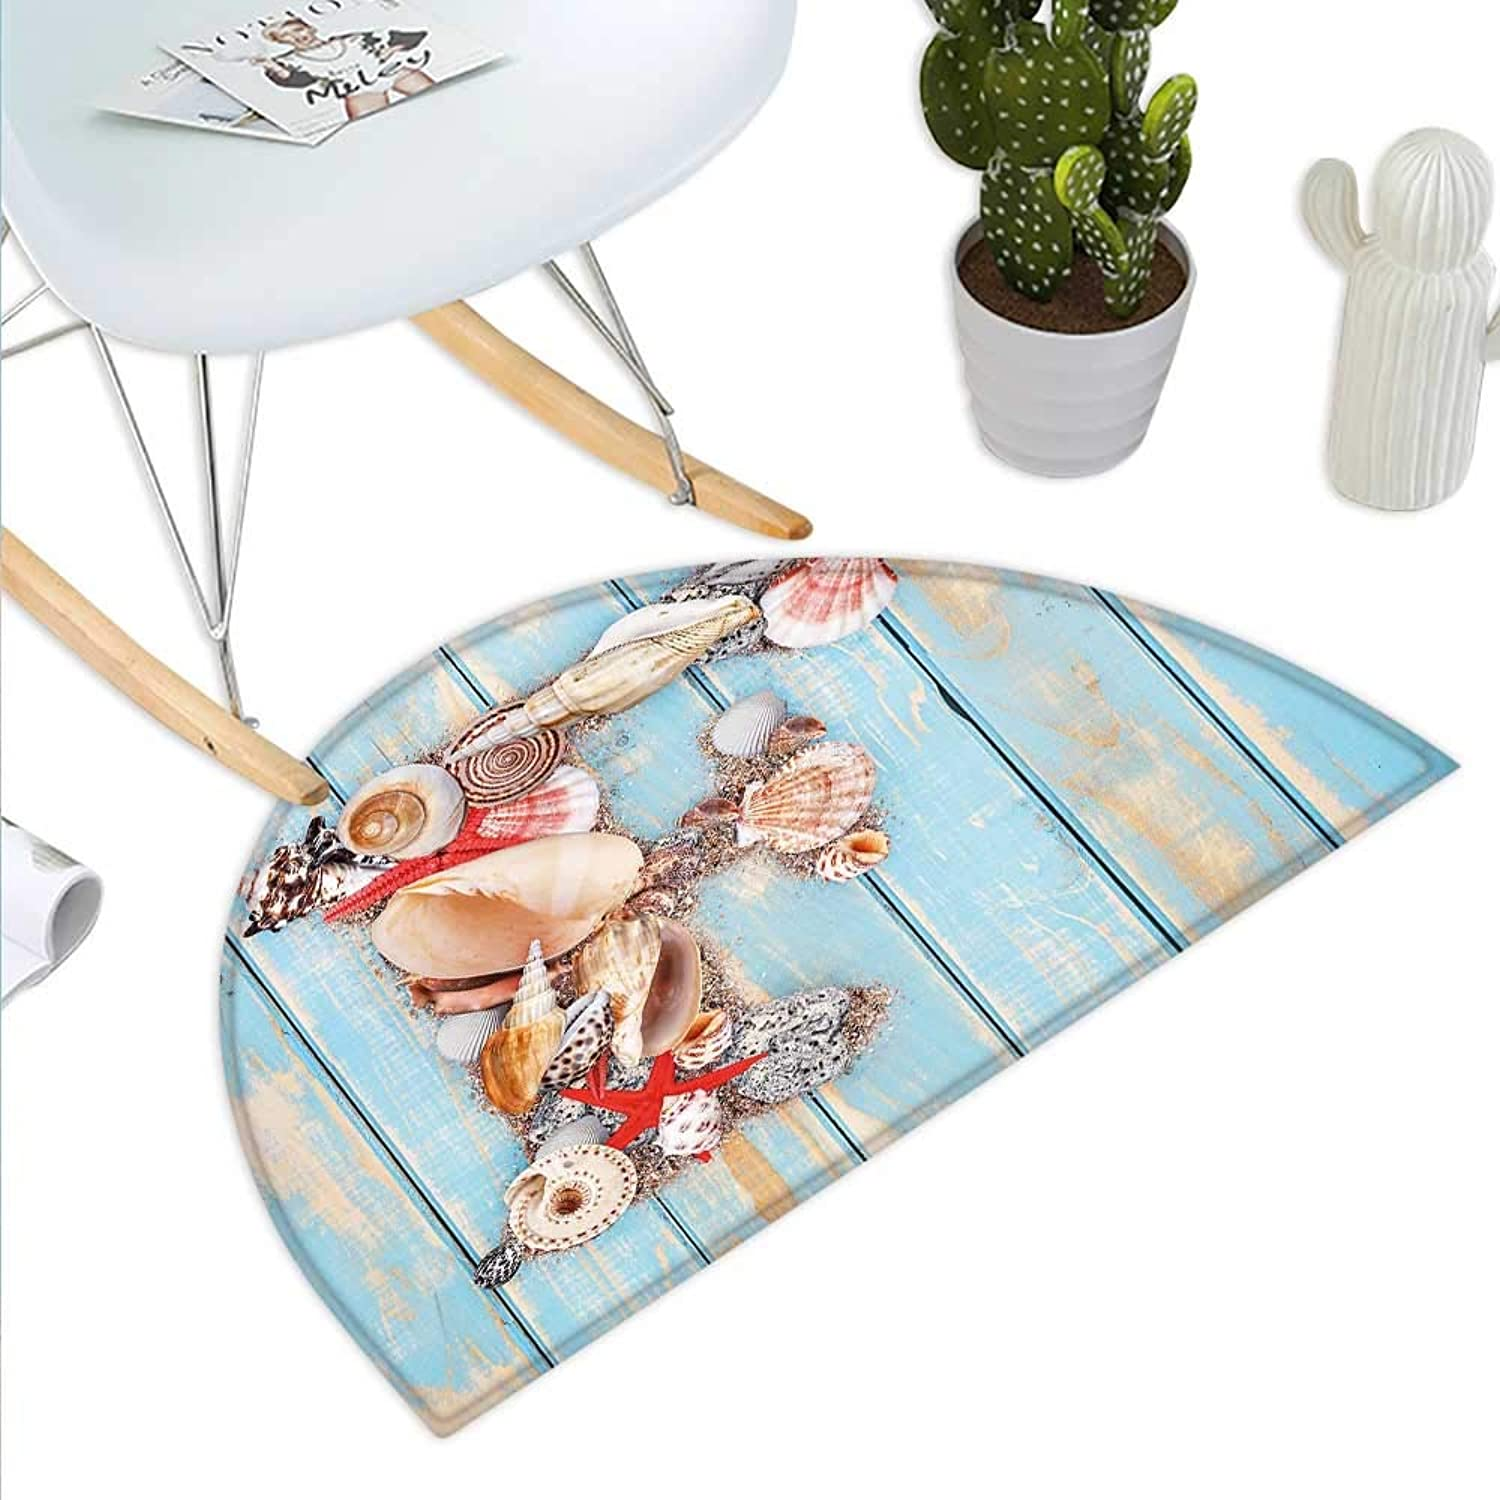 Letter F Semicircle Doormat Coastal Image with Soft color Sea Related Animal Shells Alphabet Halfmoon doormats H 39.3  xD 59  Pale bluee Ivory Dark Coral